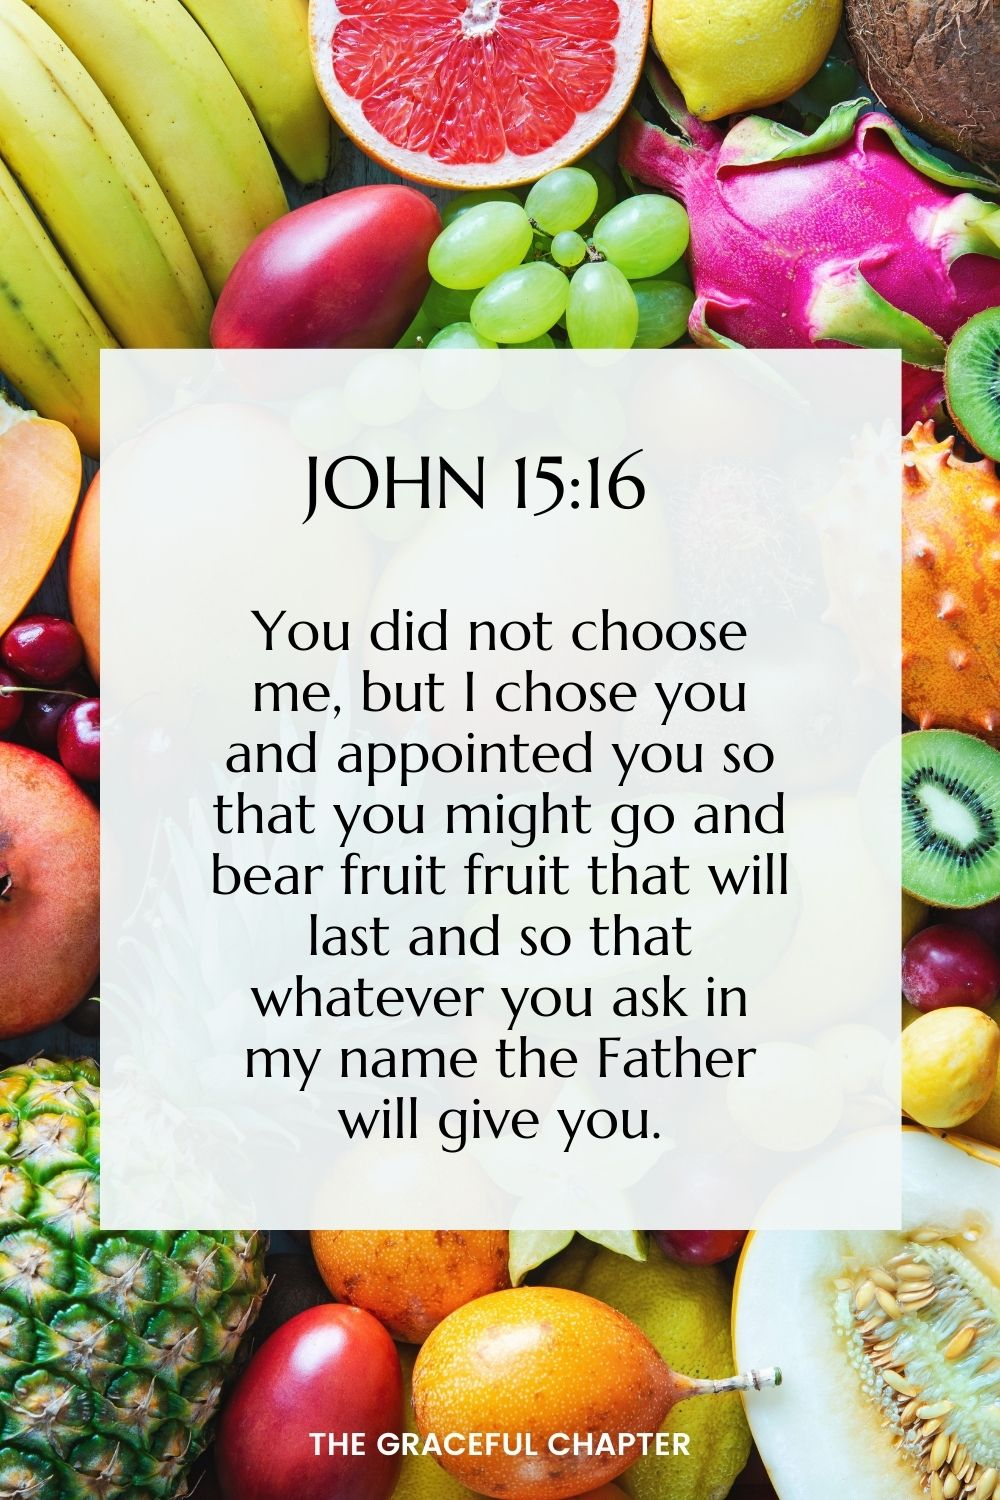 You did not choose me, but I chose you and appointed you so that you might go and bear fruit, fruit that will last and so that whatever you ask in my name the Father will give you.  John 15:16